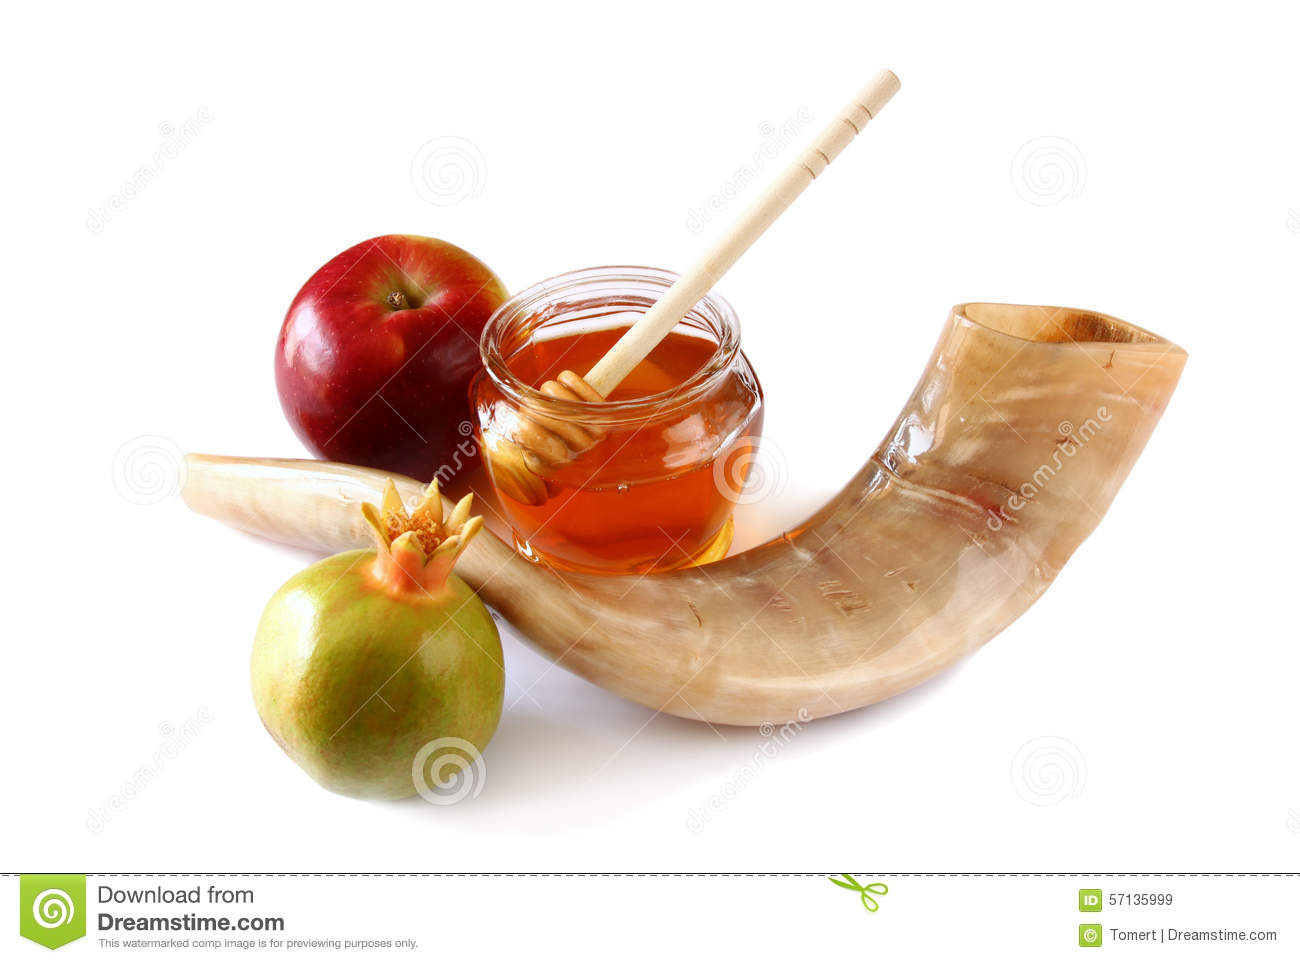 ... rosh hashanah (jewesh holiday) concept - shofar (horn), honey